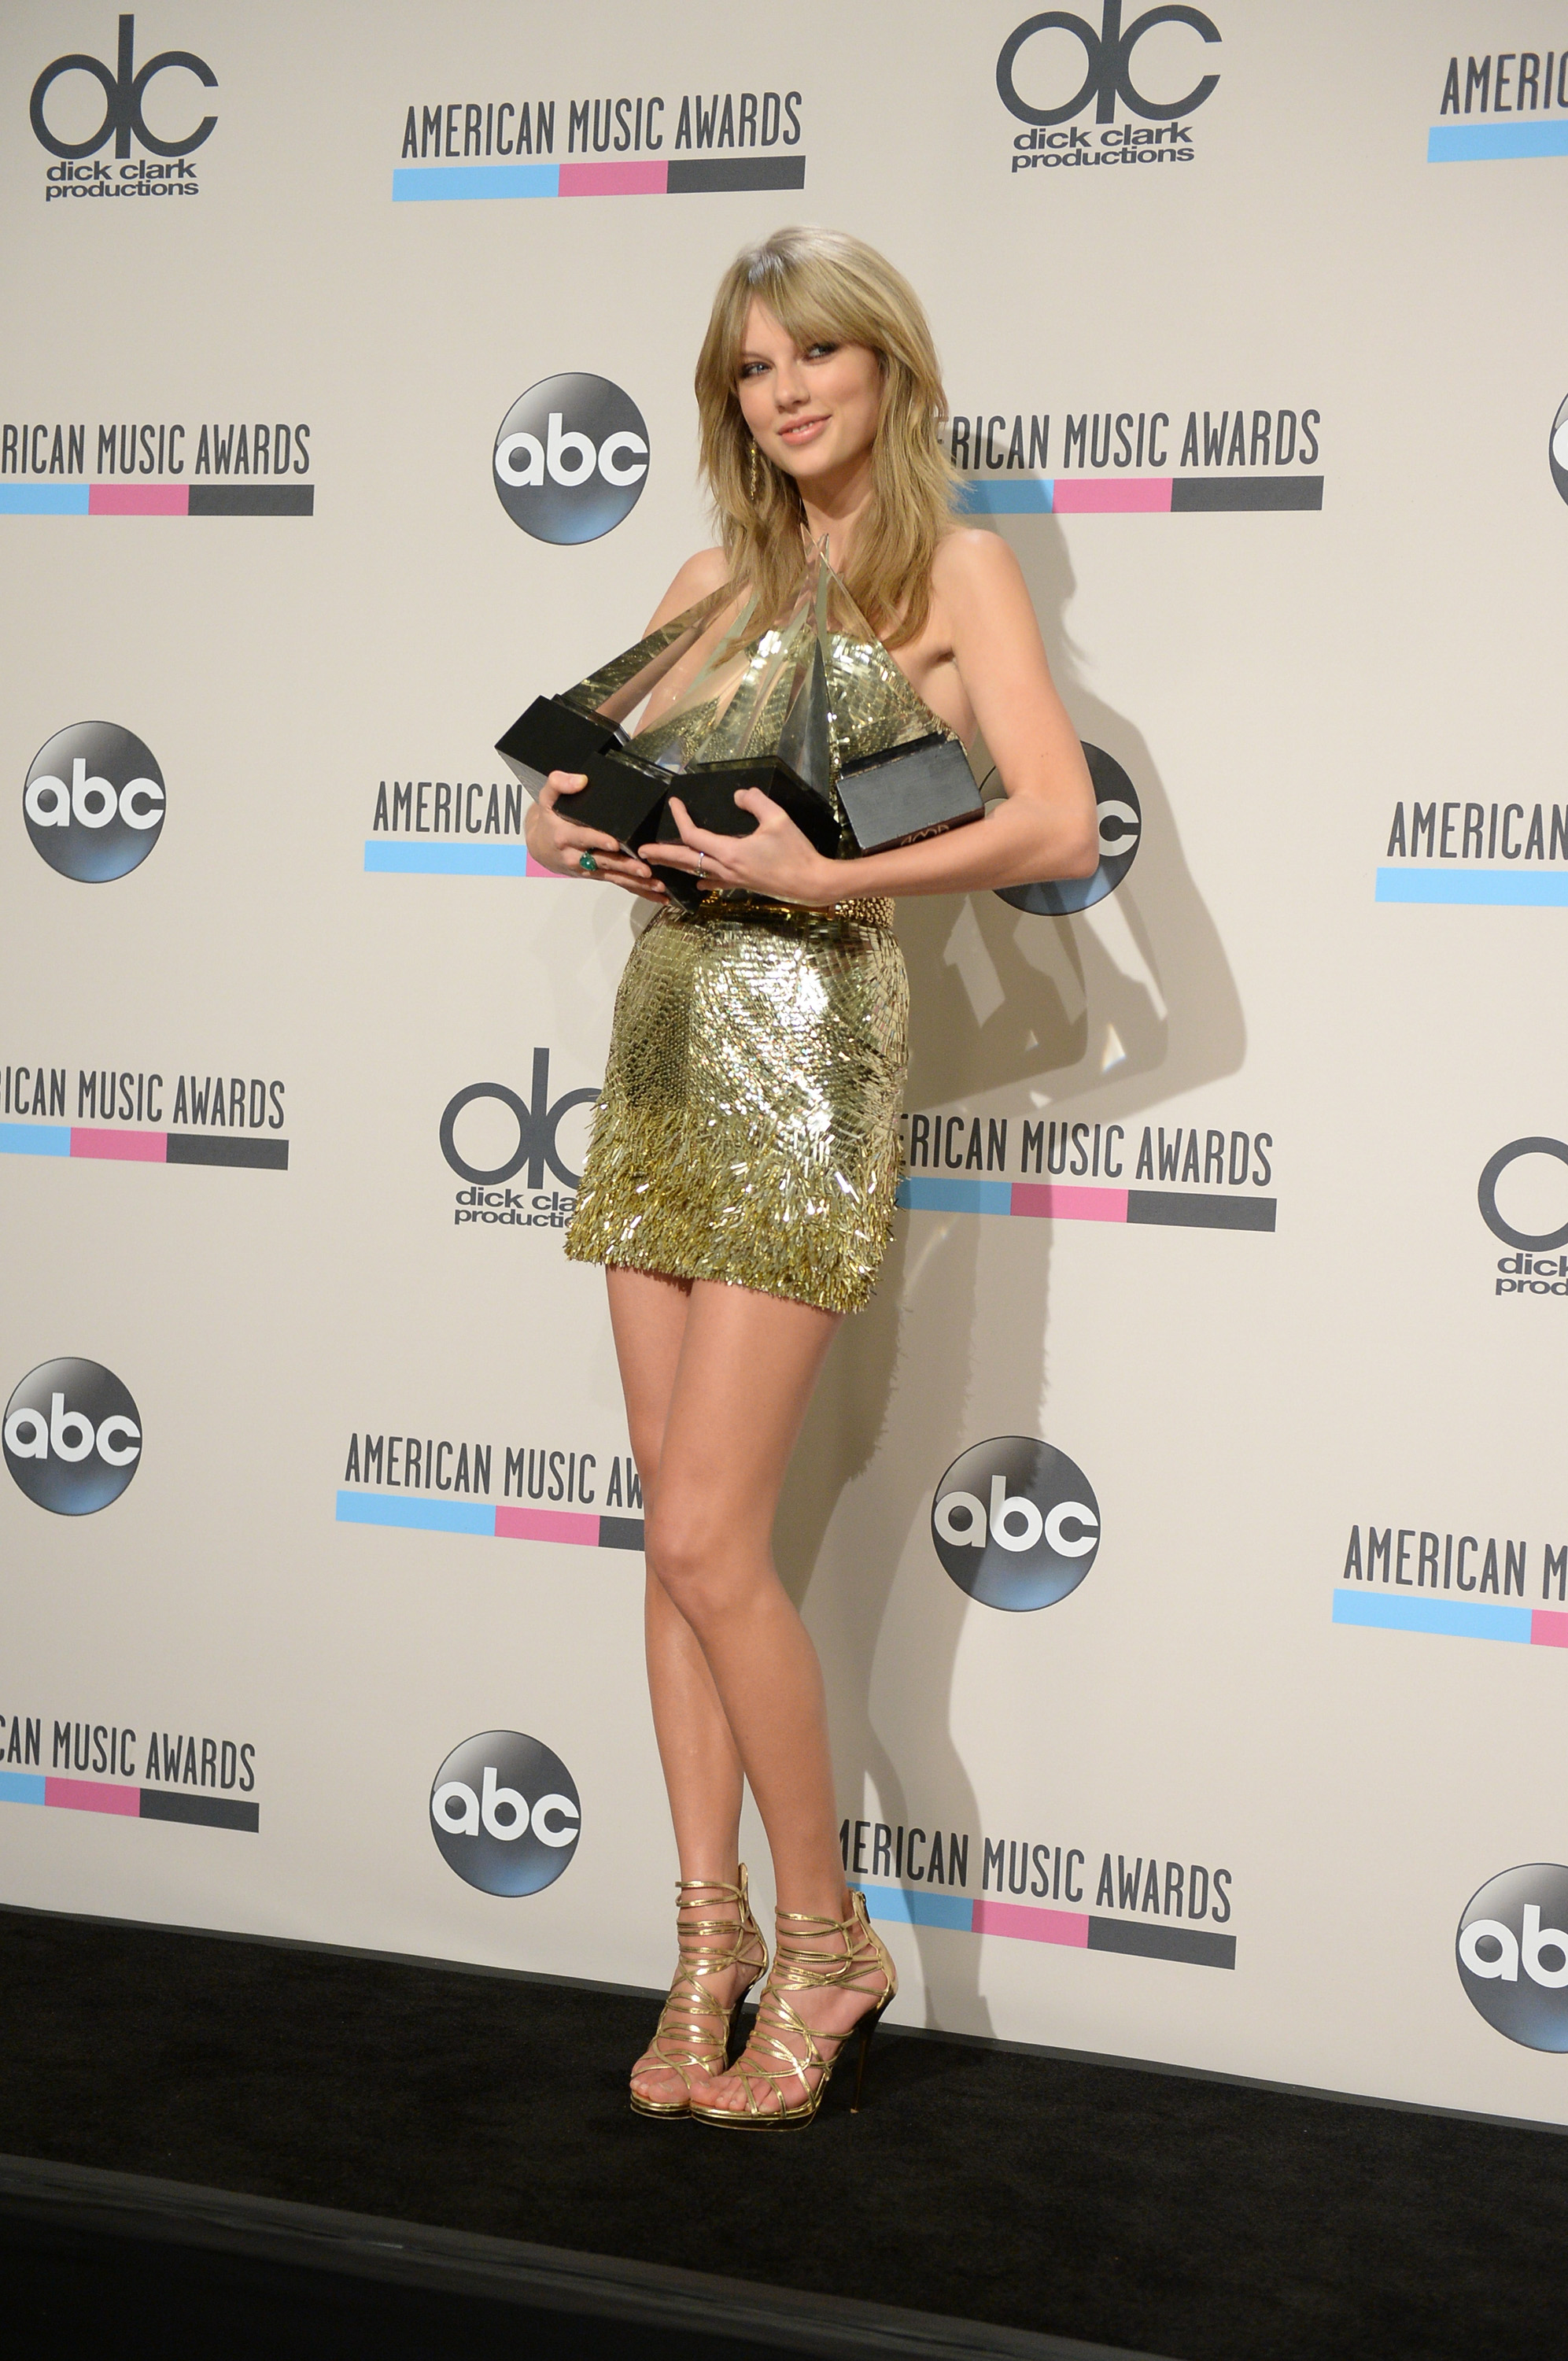 http://taylorpictures.net/albums/app/2013/americanmusicawards/082.jpg